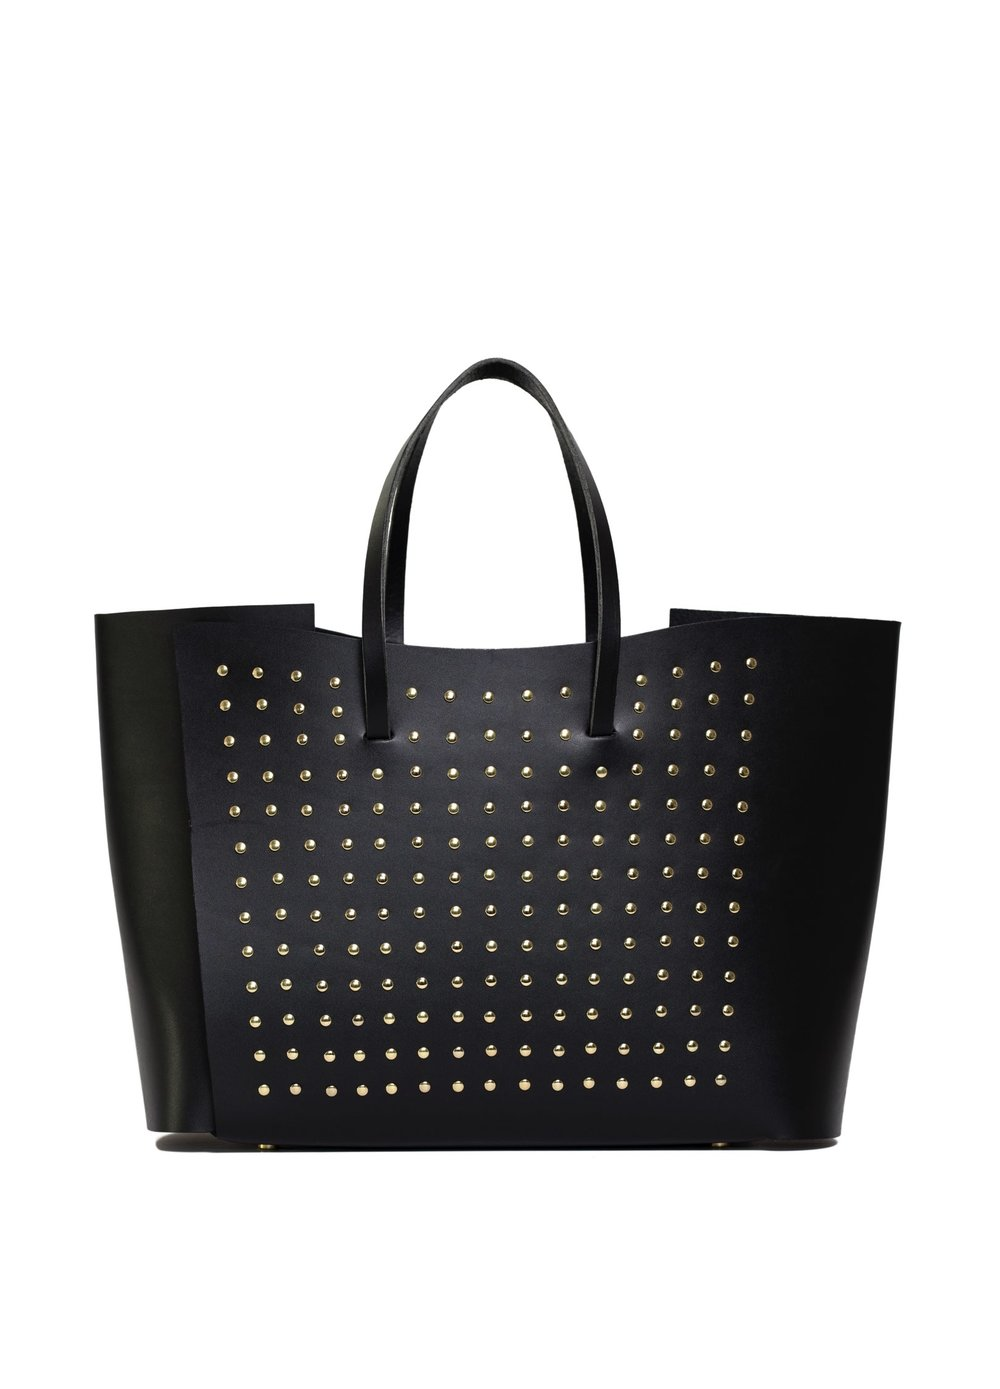 m-product-tote-black-front.jpg